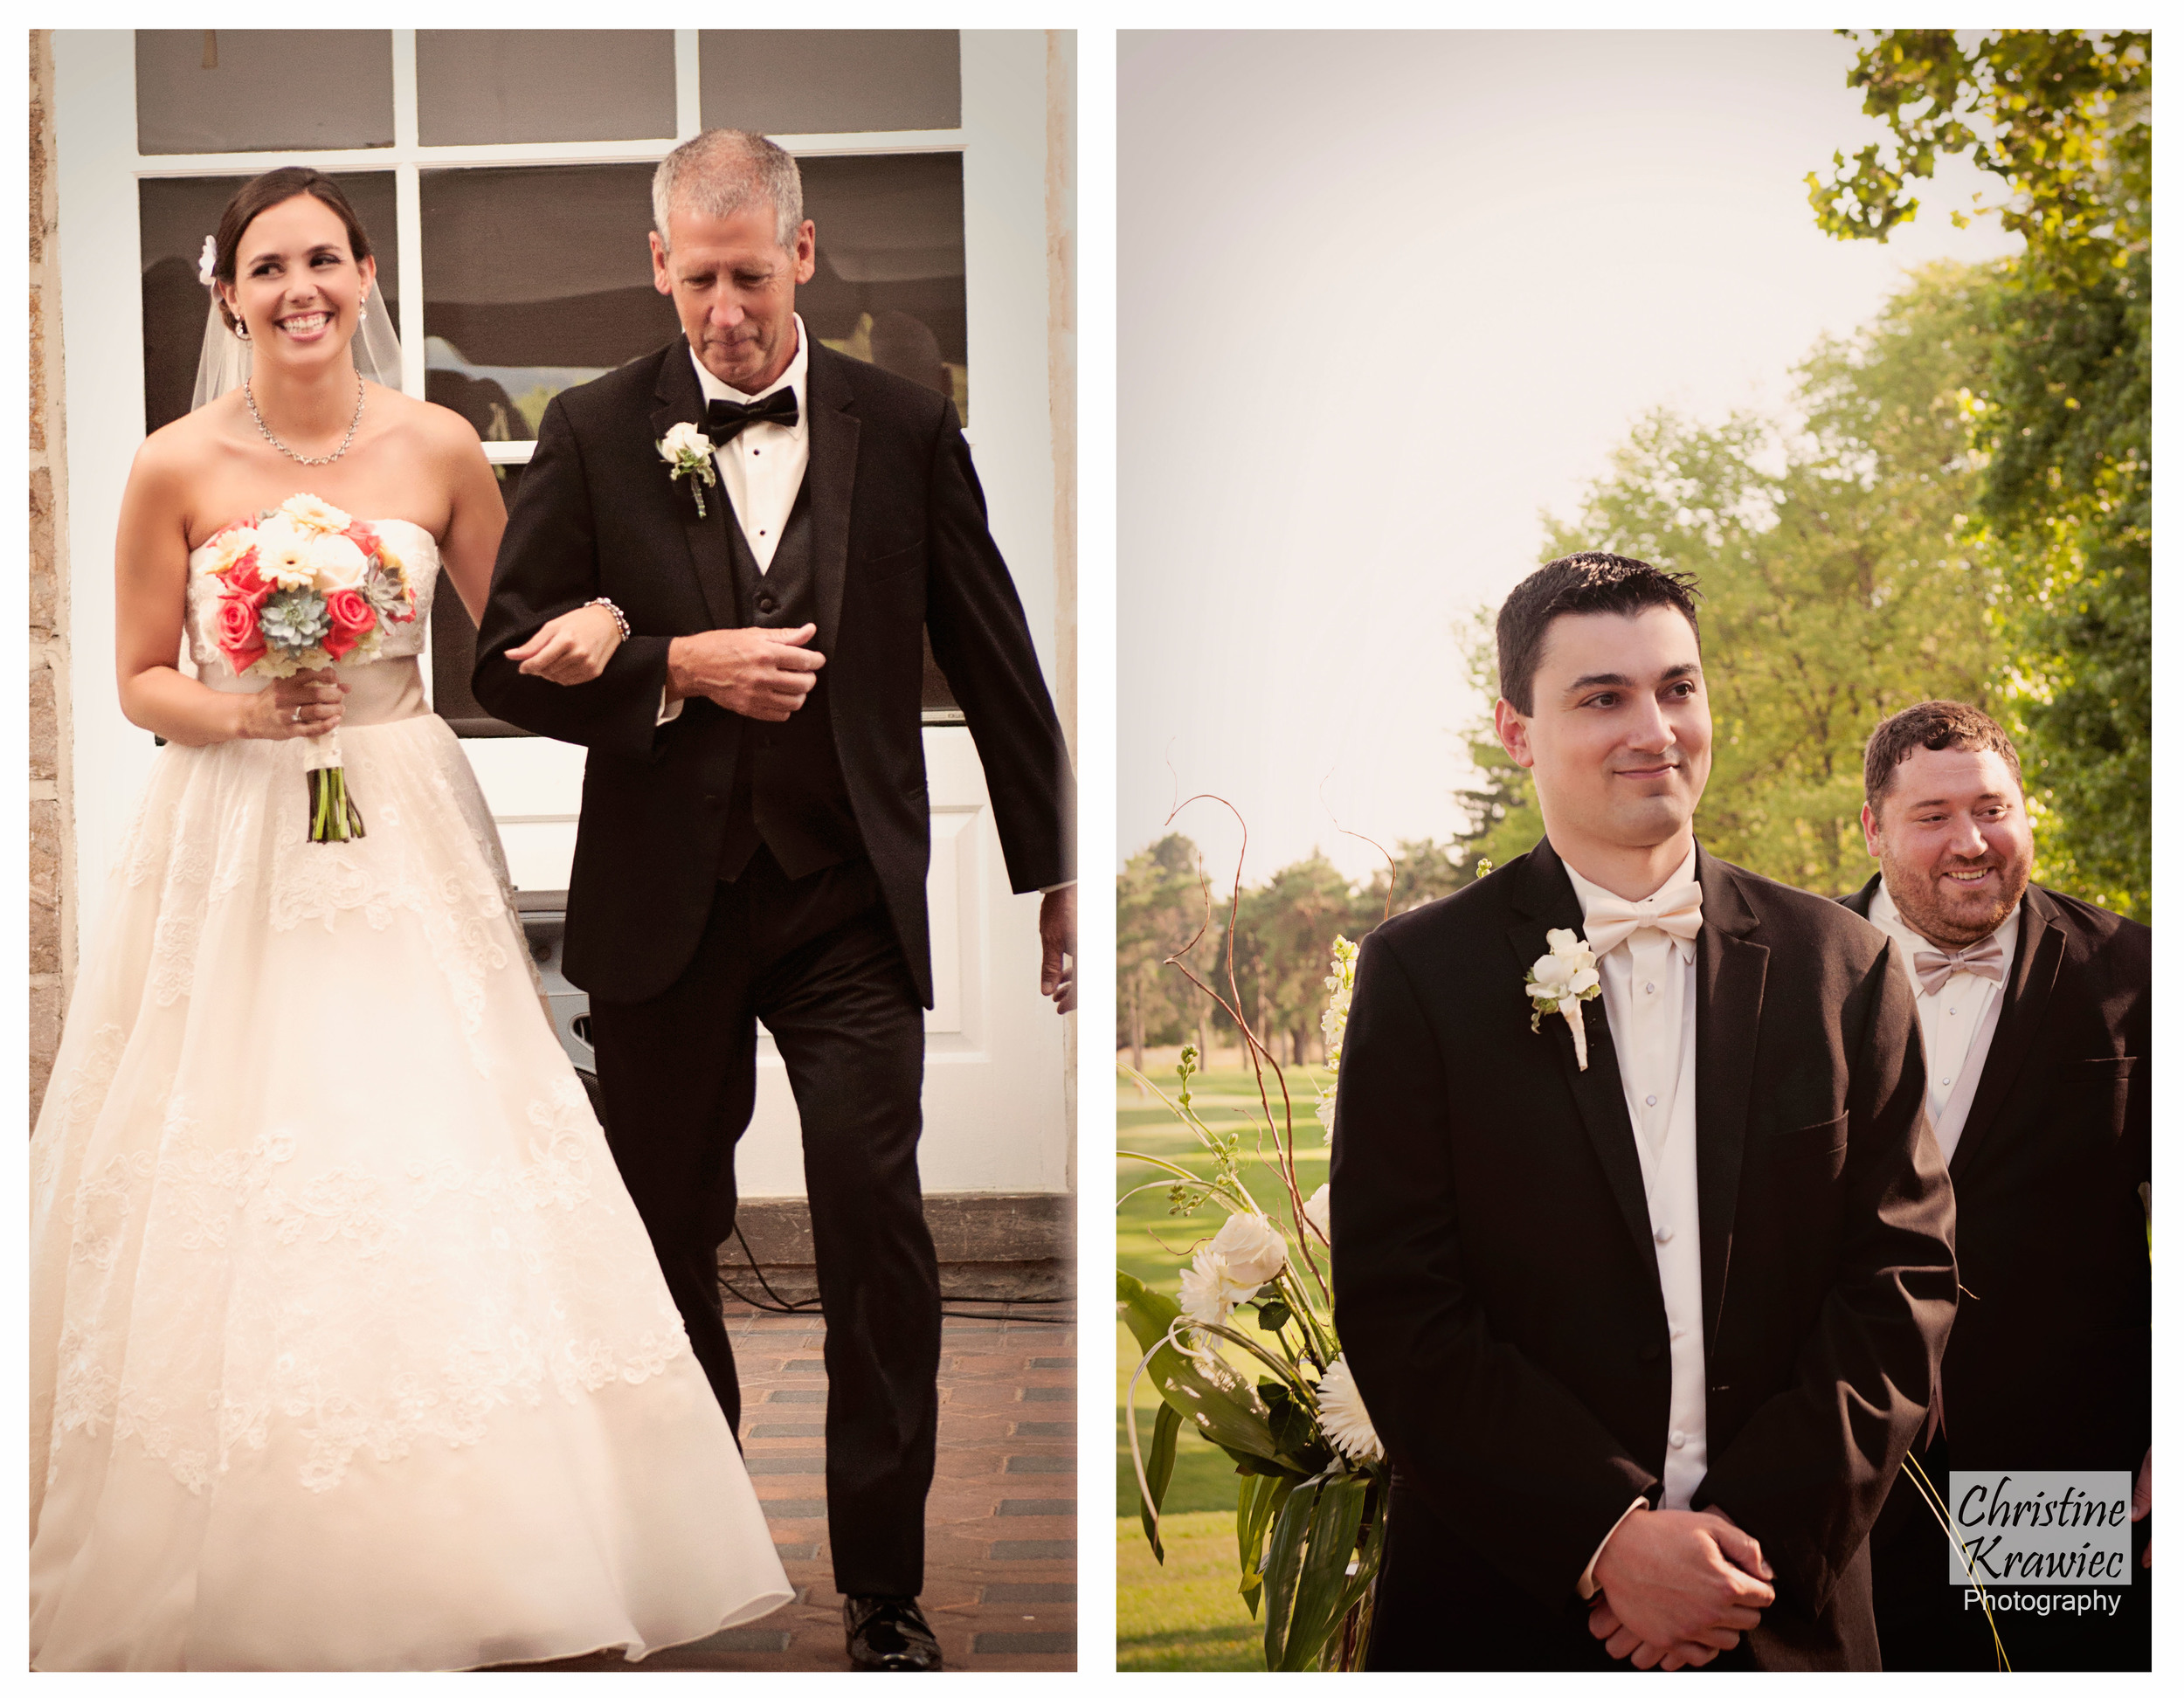 Christine Krawiec Photography - Silver Creek Country Club Wedding Photographer